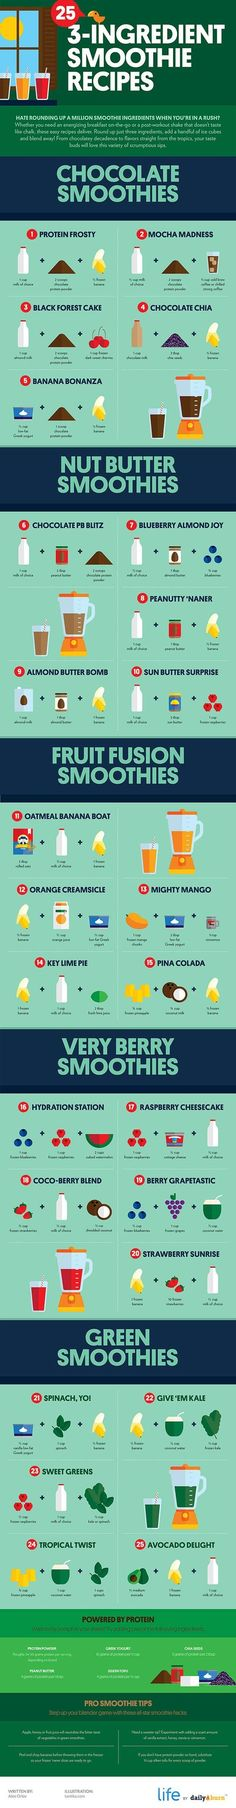 Delicious 3-Ingredient Smoothie Recipes | Diagrams For Easier Healthy Eating | https://homemaderecipes.com/healthy-eating-diagrams/